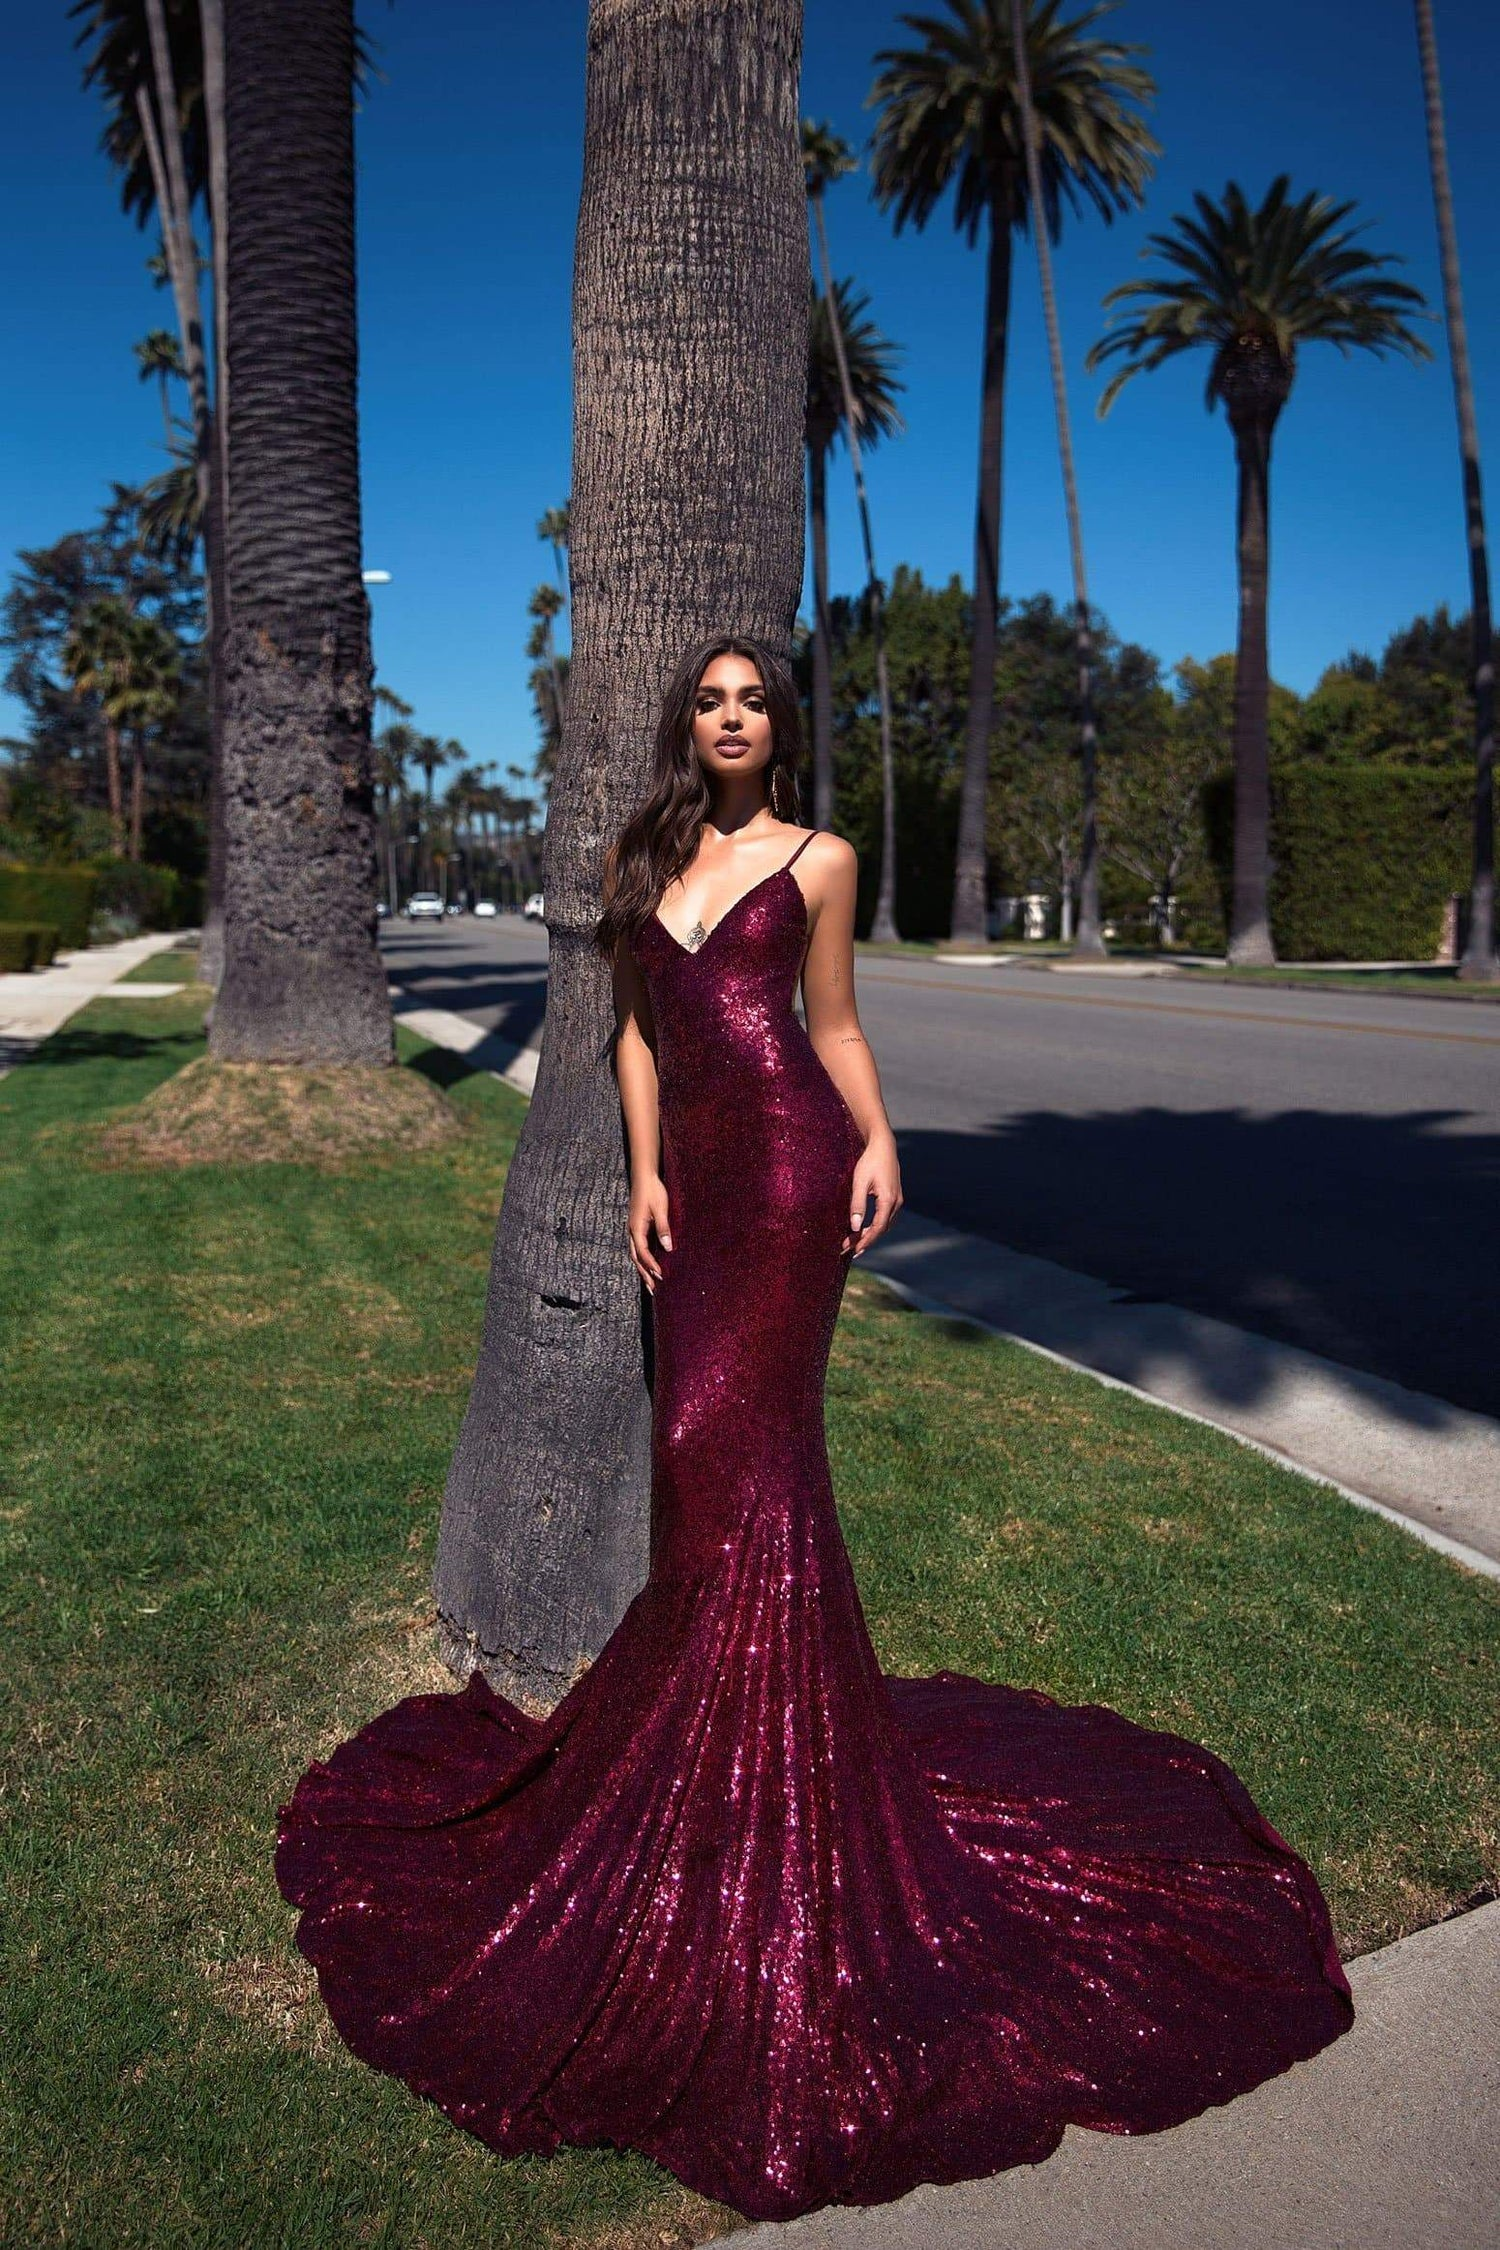 Yassmine Luxe - Burgundy Sequin Gown with Plunge Neckline & Low Back